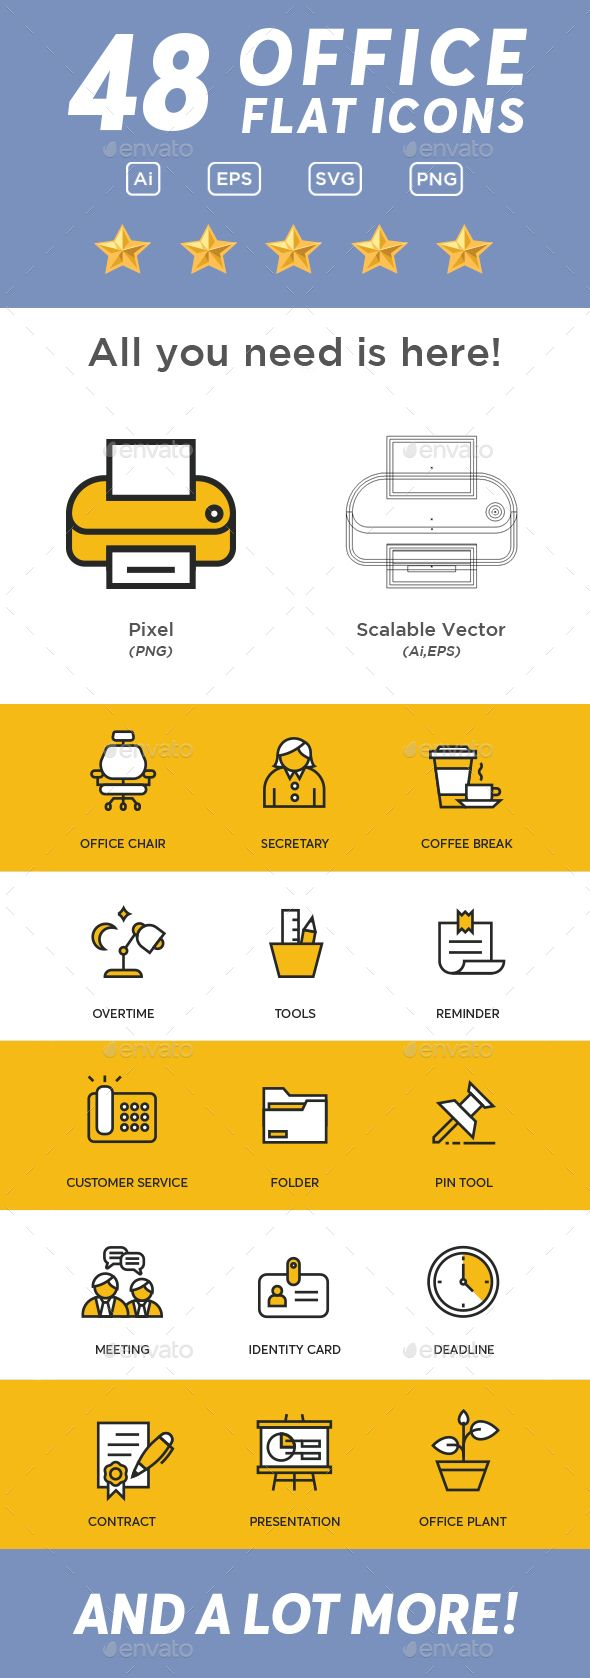 Flat icons for your business or personal use. Only $8 Product details : - Ai files (1 Set)- EPS10 (48 items)- PNG (300dpi)- SVG 1.1 (48 items) Featured : - Scalable Vector- Color Mode CMYK If you any question feel free to contact me (enhaka.enhaka@gmail.com)